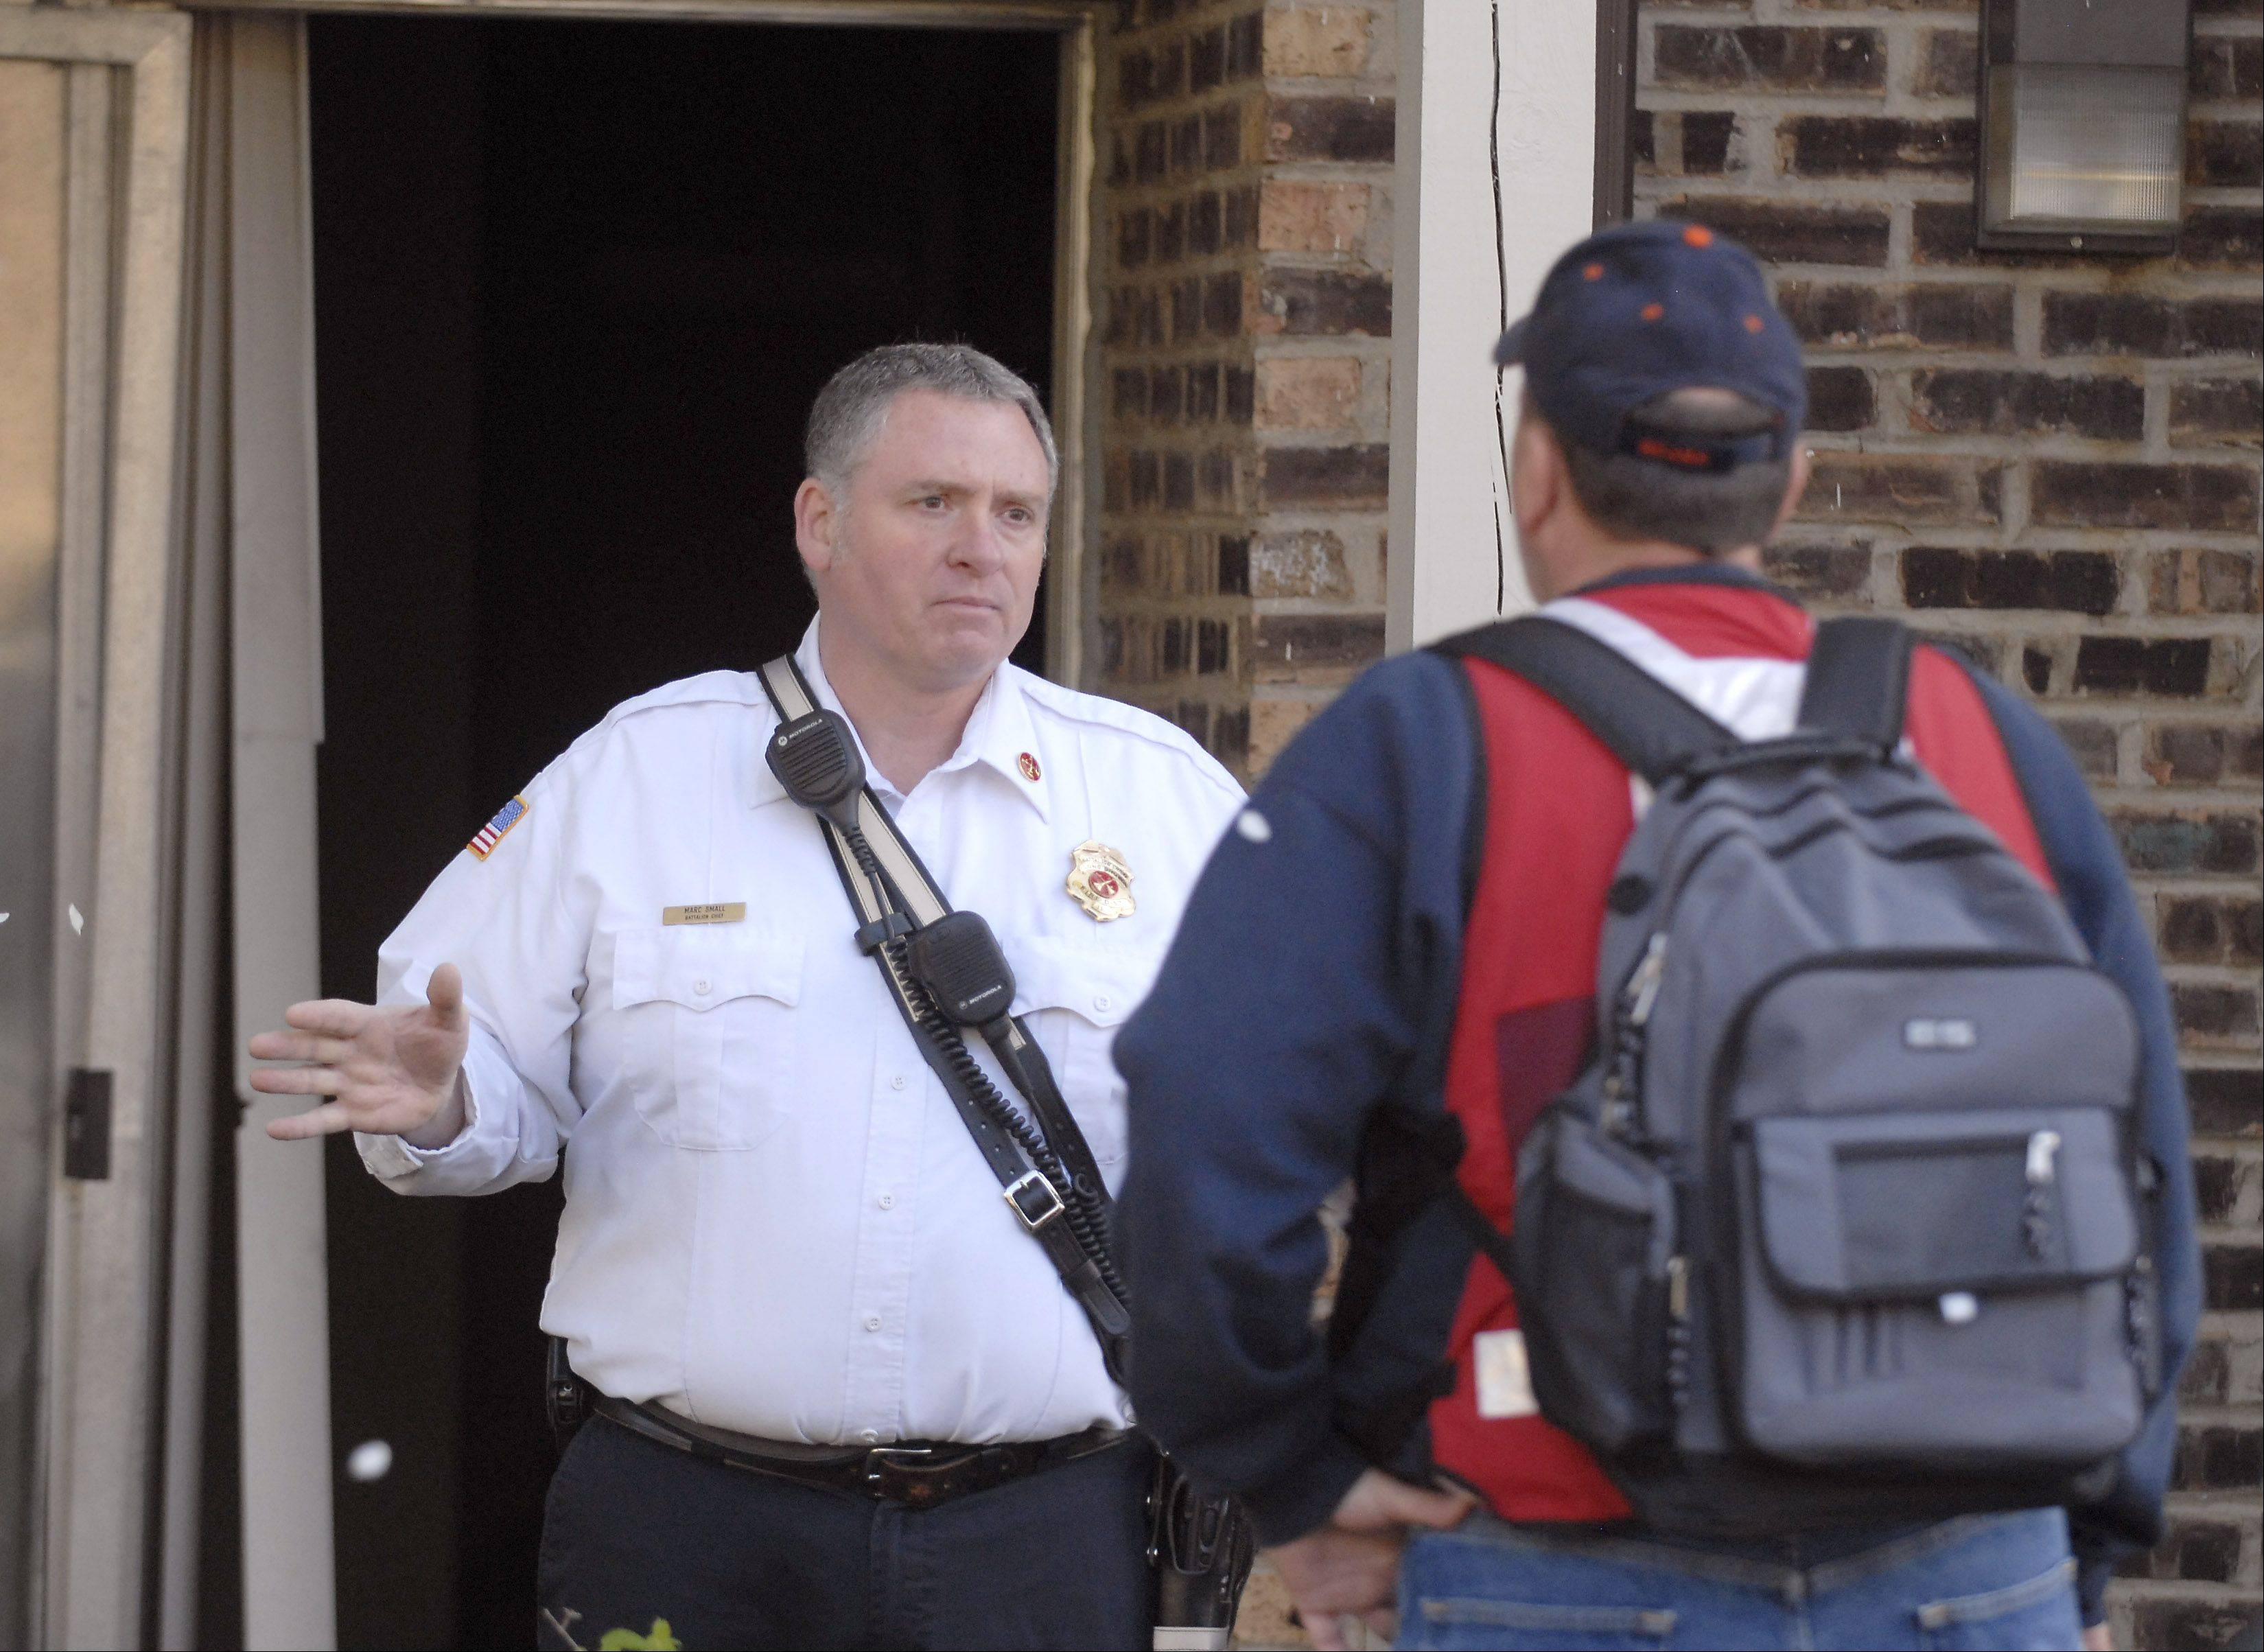 Long Grove Fire Battalion Chief Marc Small explains that residents of six apartments cannot return to their units because water and power had to be shut off after fire erupted in the utility room of the Country Glen apartment complex near Arlington Heights. The department and Red Cross worked with residents to retrieve belongings and find housing.